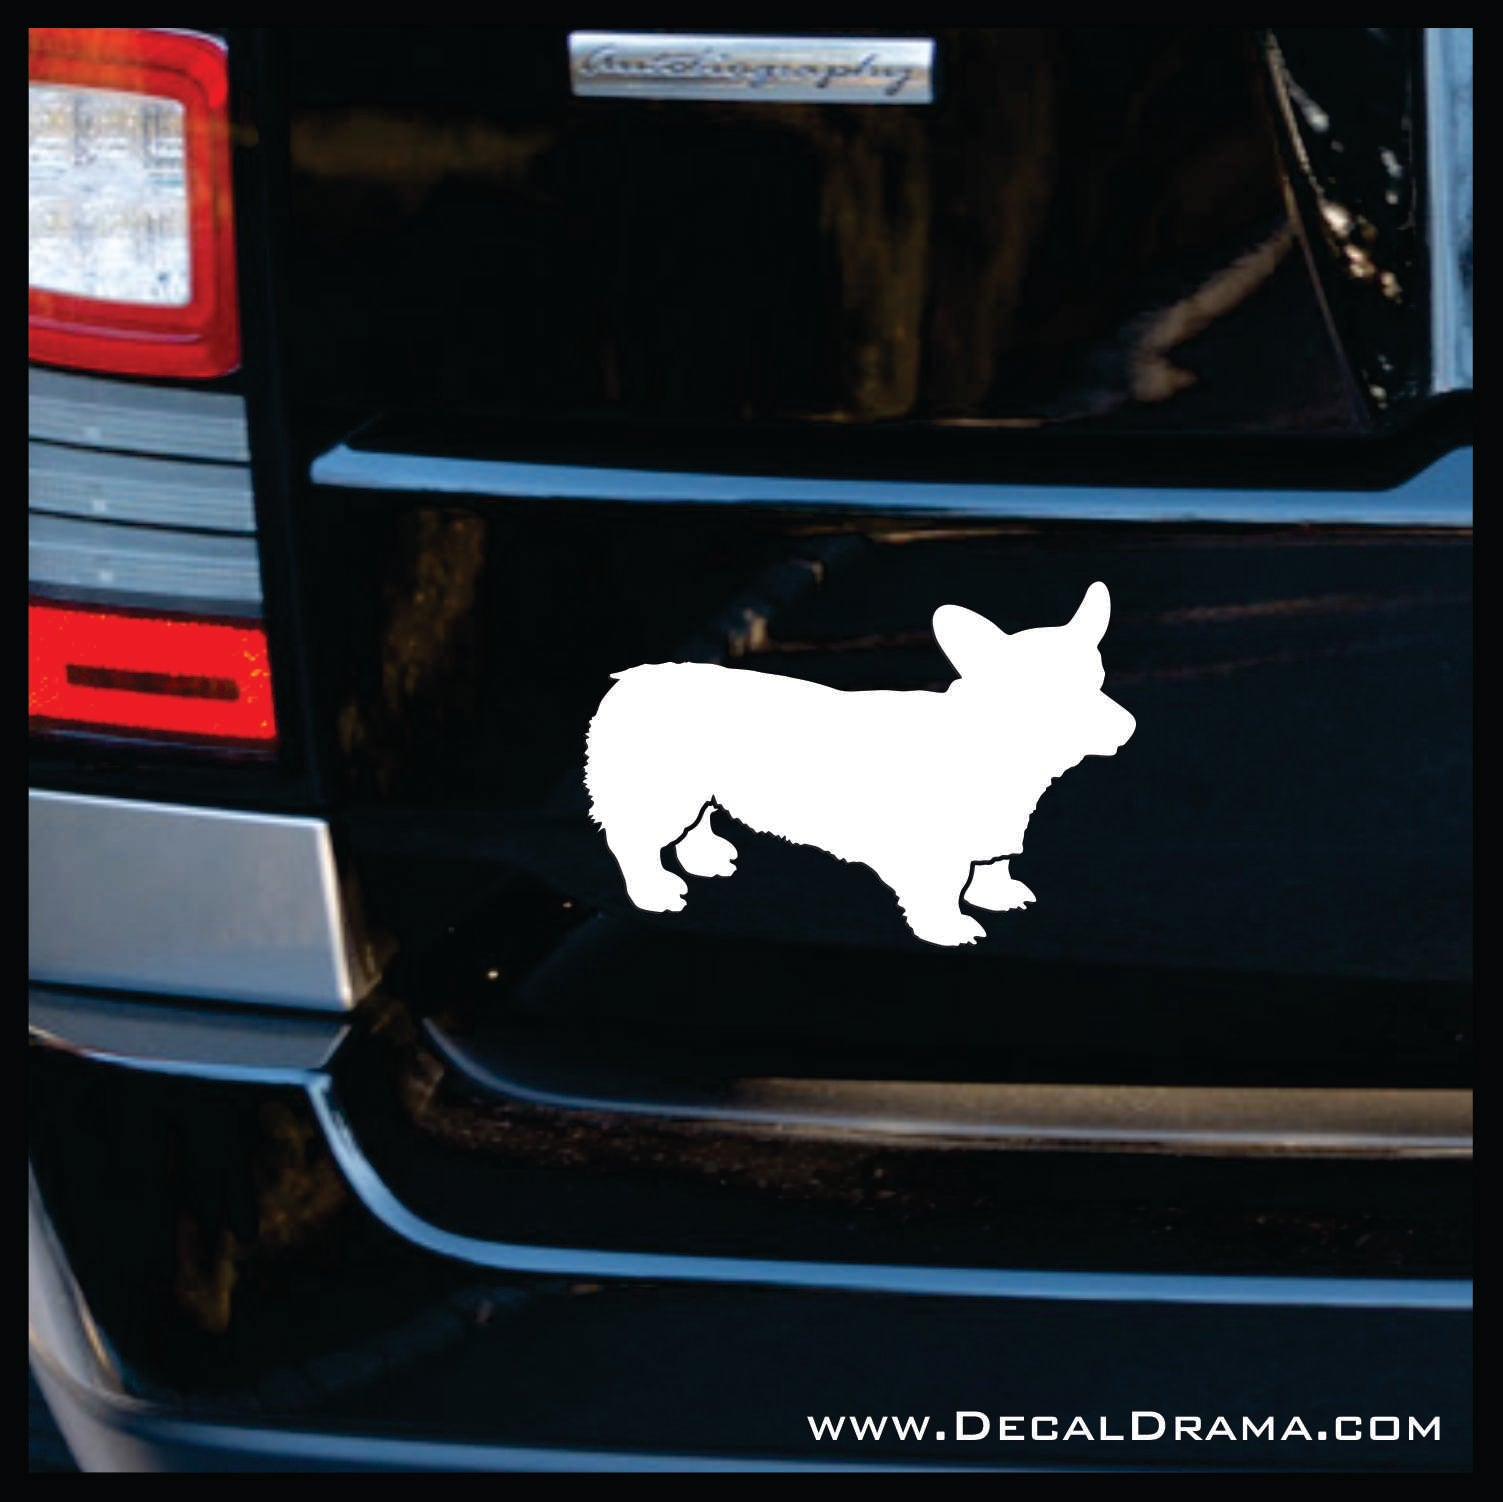 Welsh Corgi Dog Silhouette Animal Vinyl Car/Laptop Decal